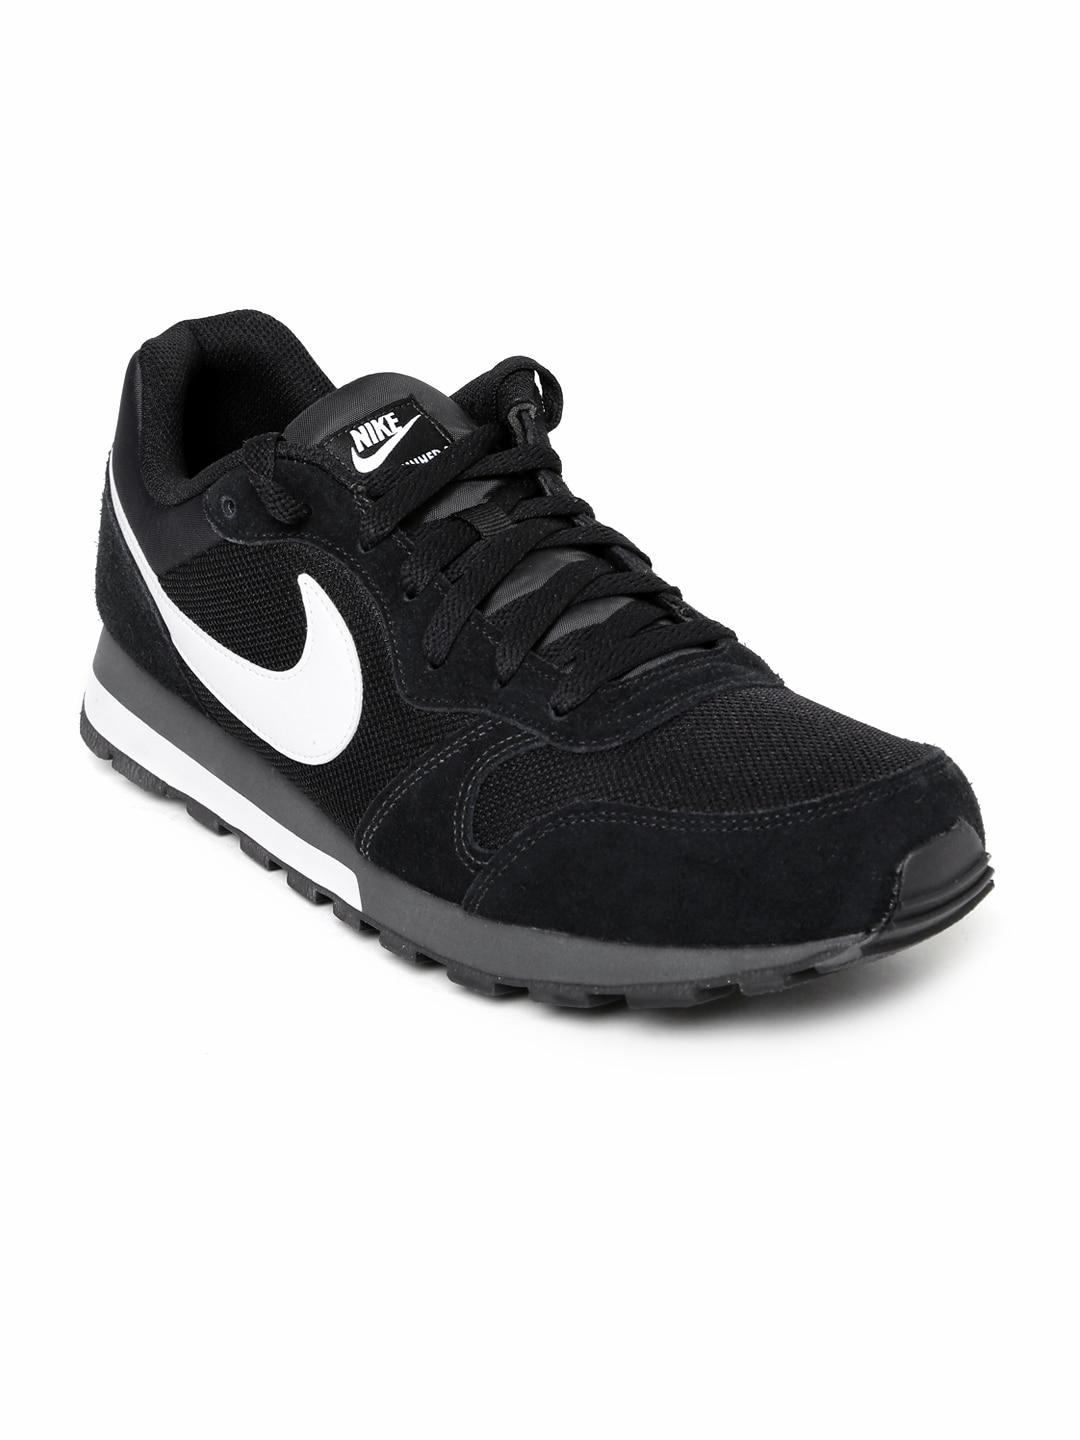 low priced fc1c6 48cc9 Nike Shoes for Men - Buy Men s Nike Shoes Online   Myntra